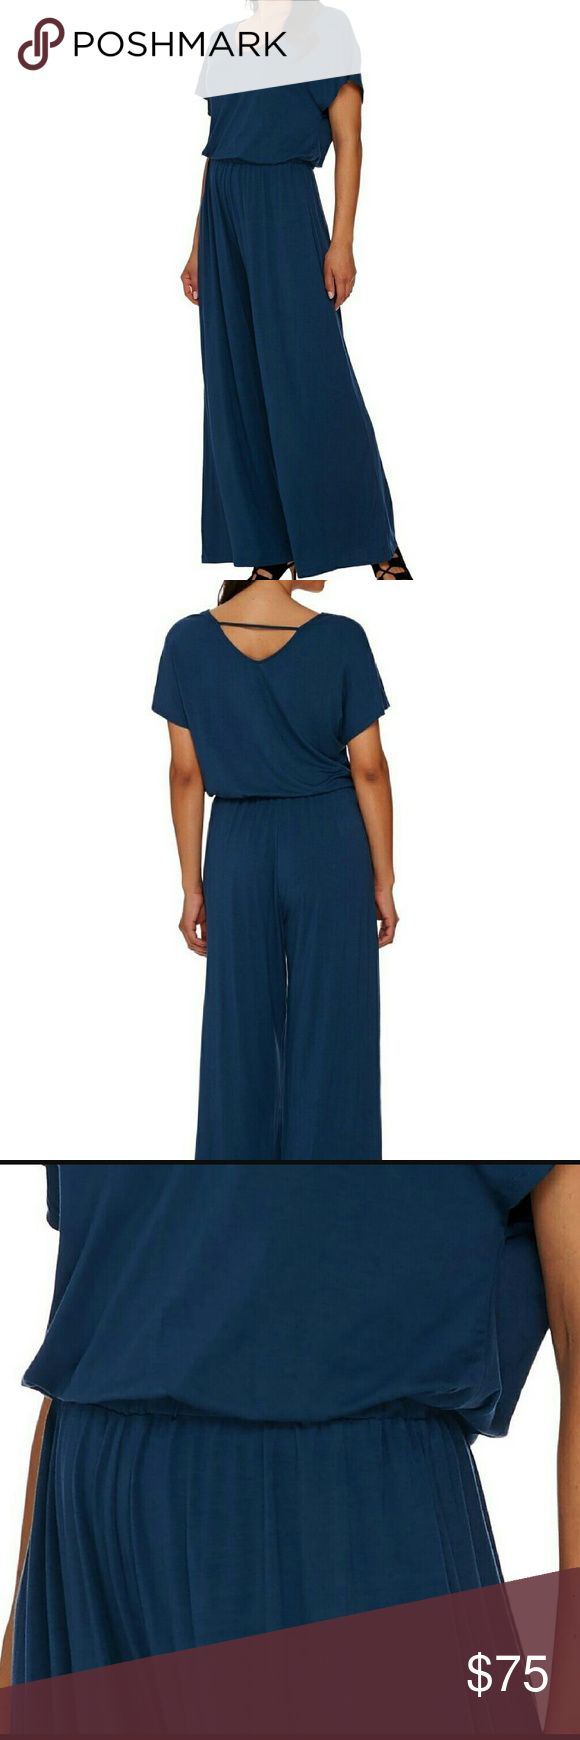 Lisa Rinna Slinky Blue Jumpsuit NWOT Tons of stretch and slinky material. 95% Rayon/5% Spandex.   Elastic waist, easy pull on style.  Gorgeous deep ocean blue. Lisa rinna Pants Jumpsuits & Rompers